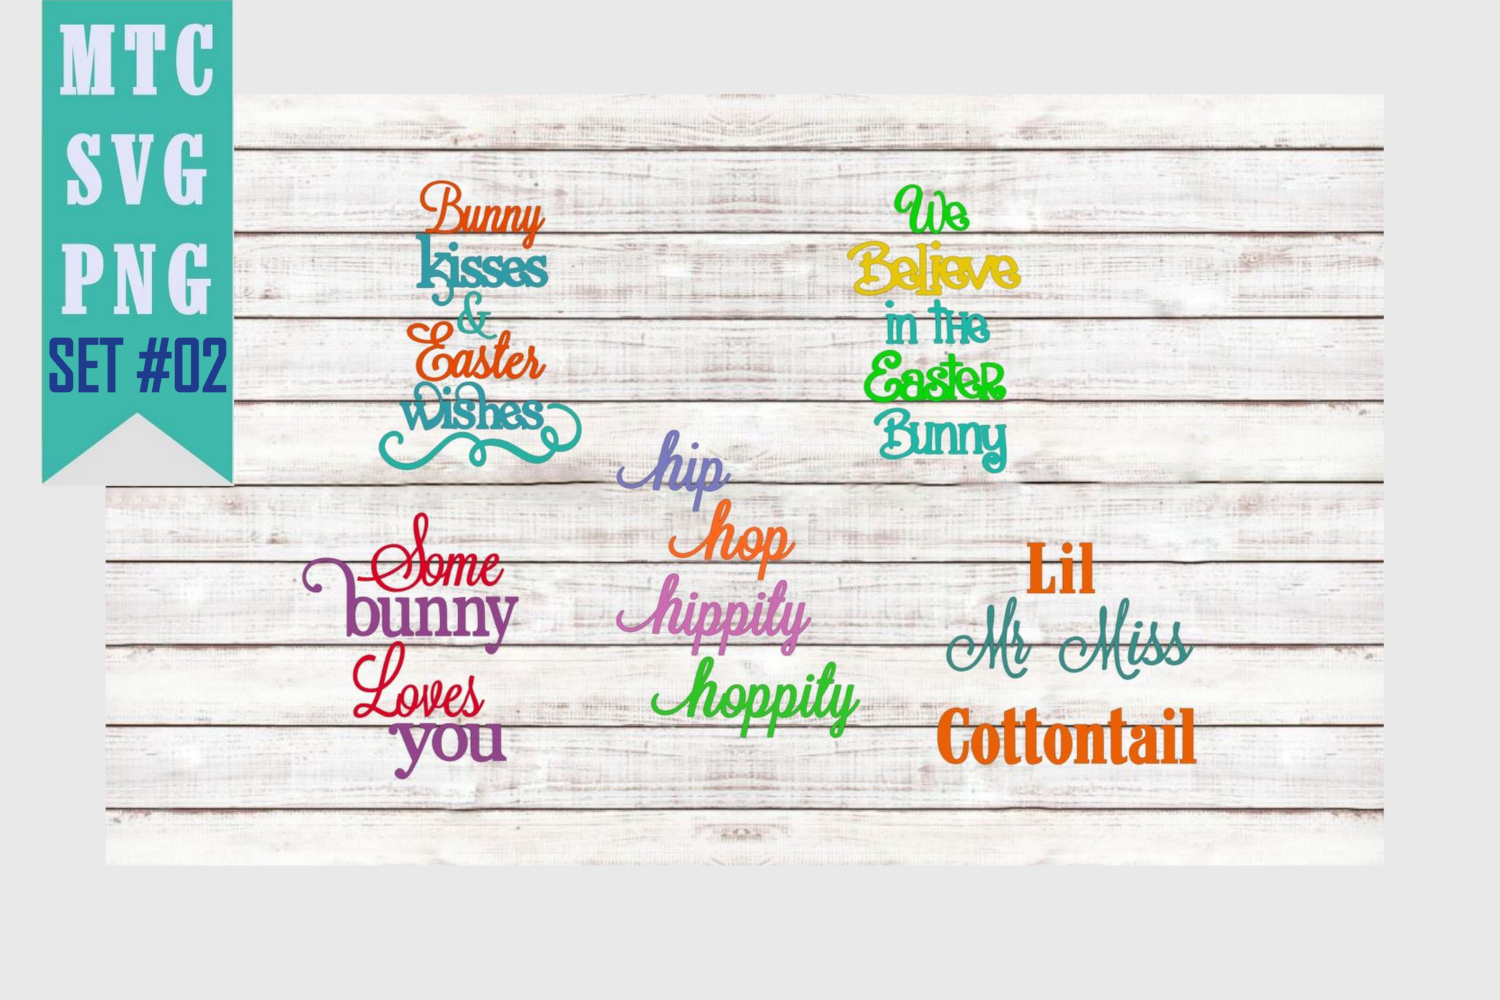 Peeping Easter Bunny Set #2 with Sayings Set #2 SVG Cut File example image 3